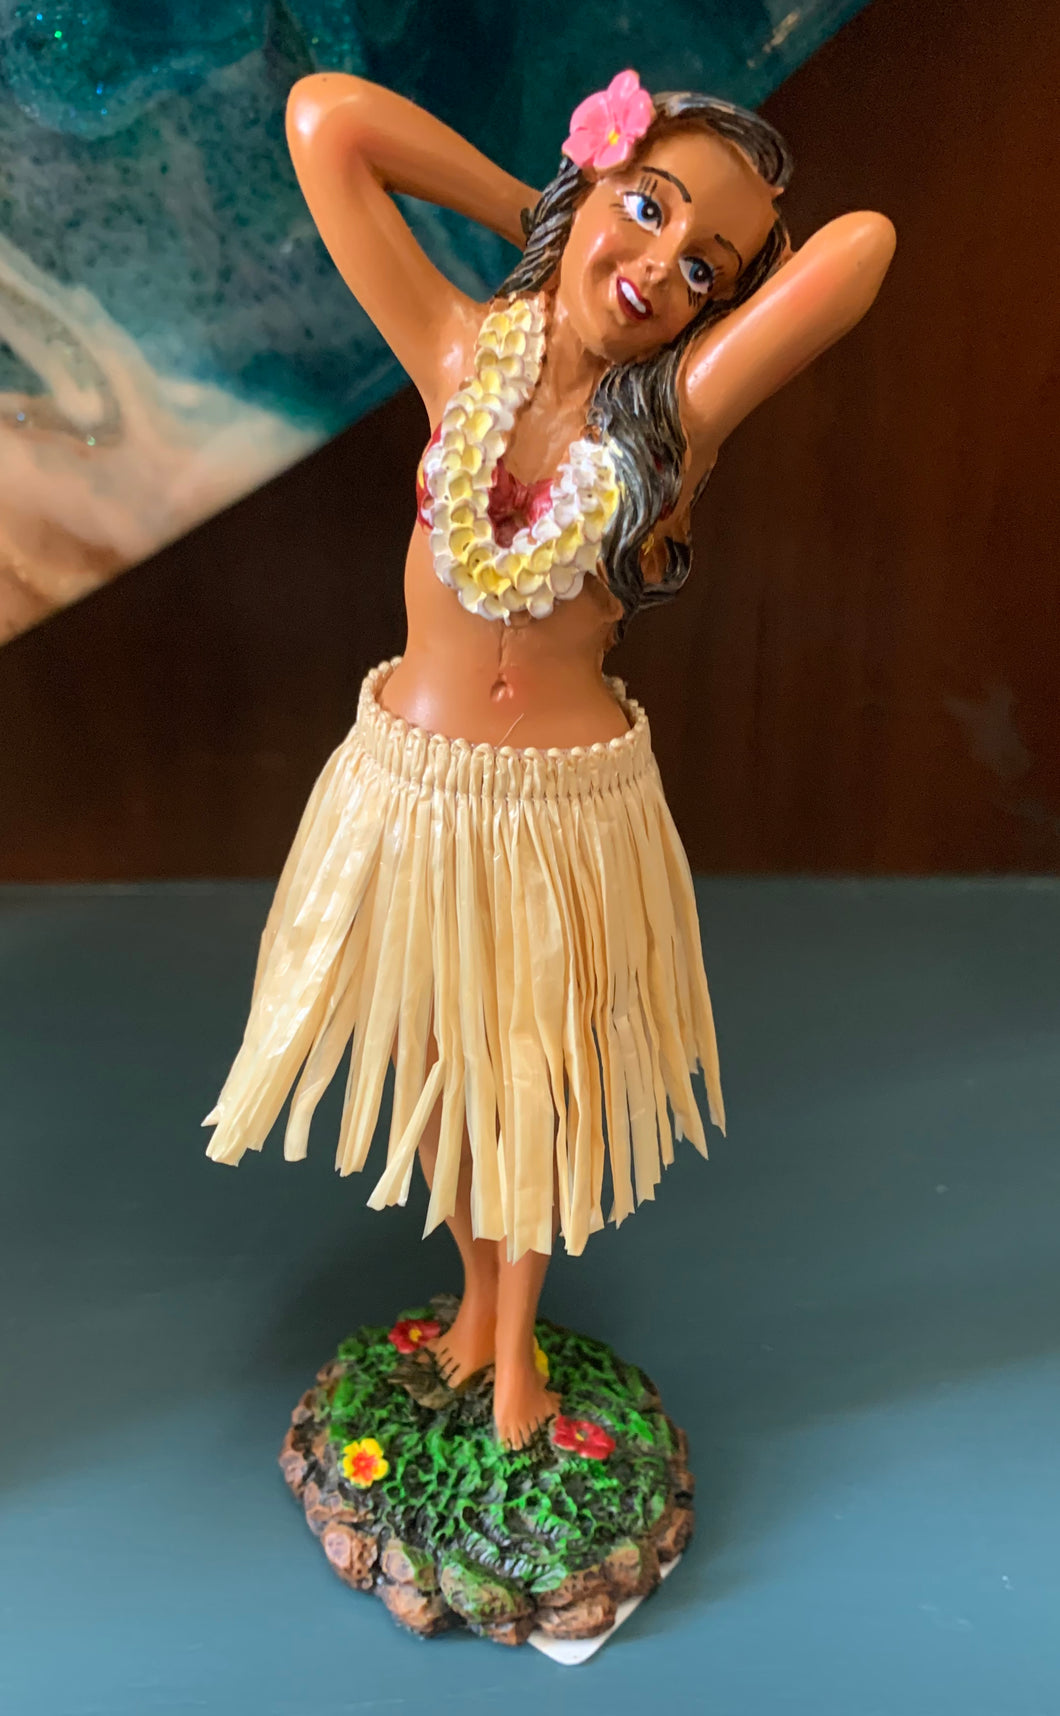 Dash Board Hula Doll